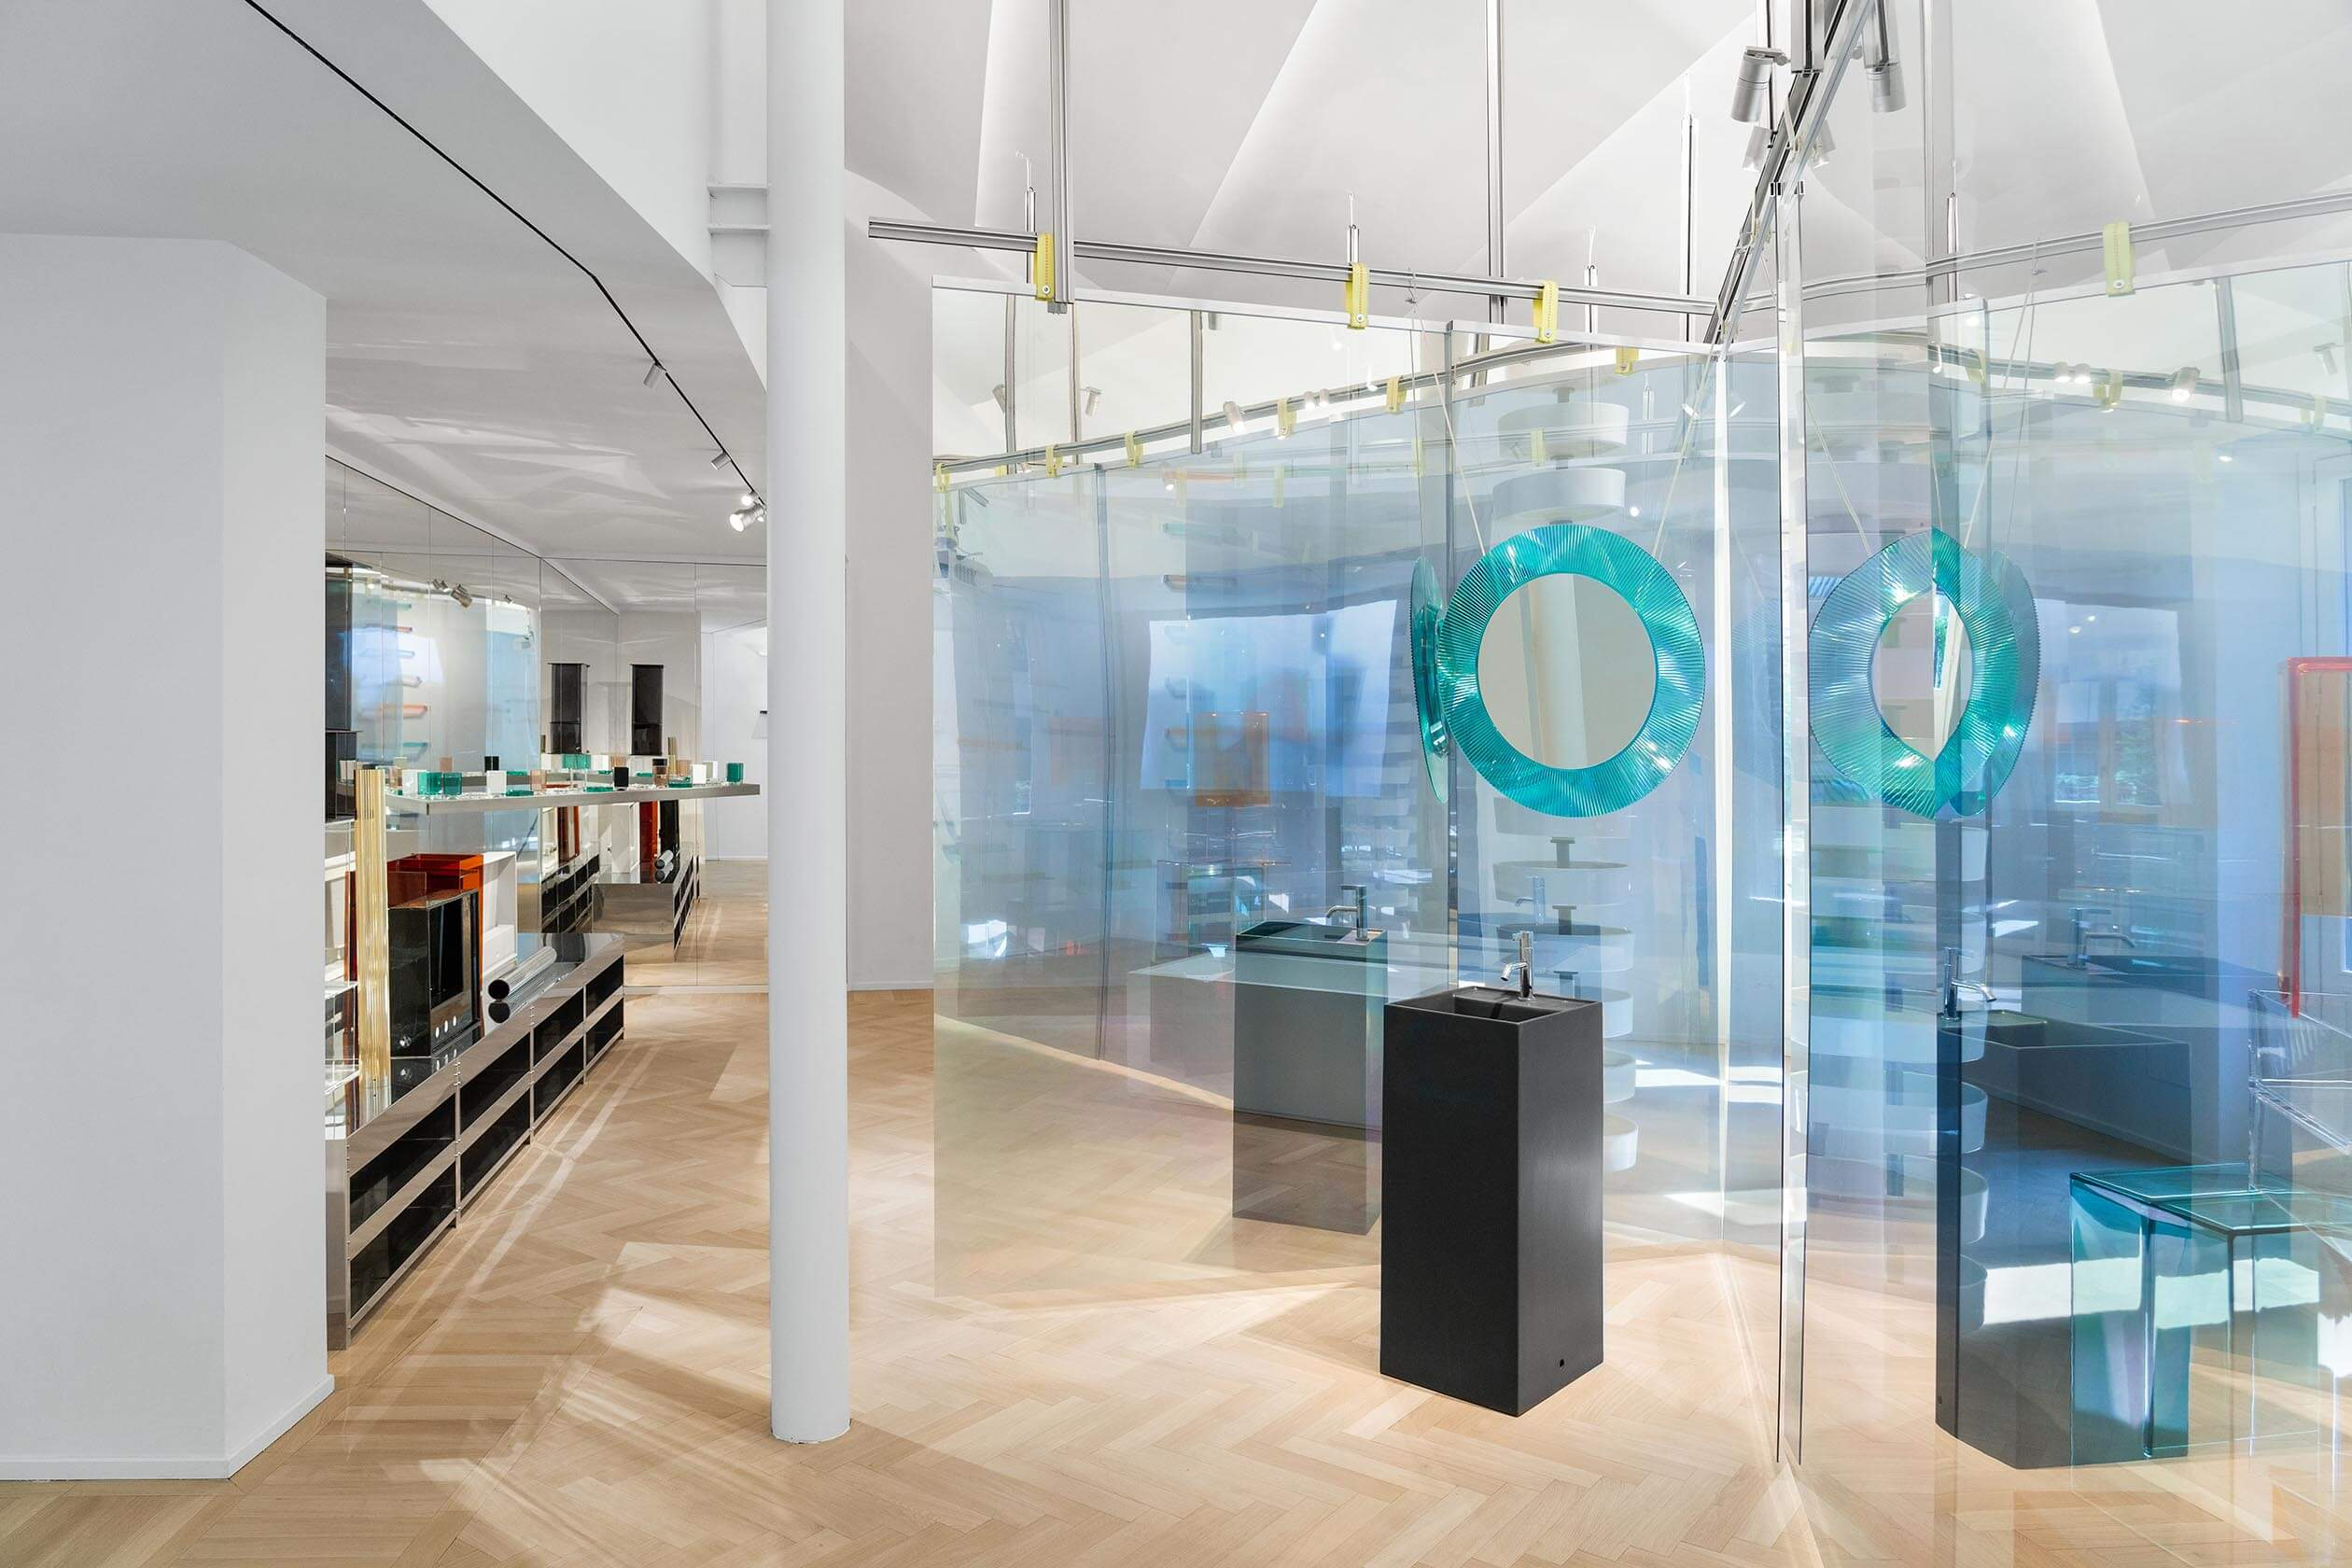 Part of the exhibition with glass walls, mirrors and standing black Kartell by Laufen washbassins.